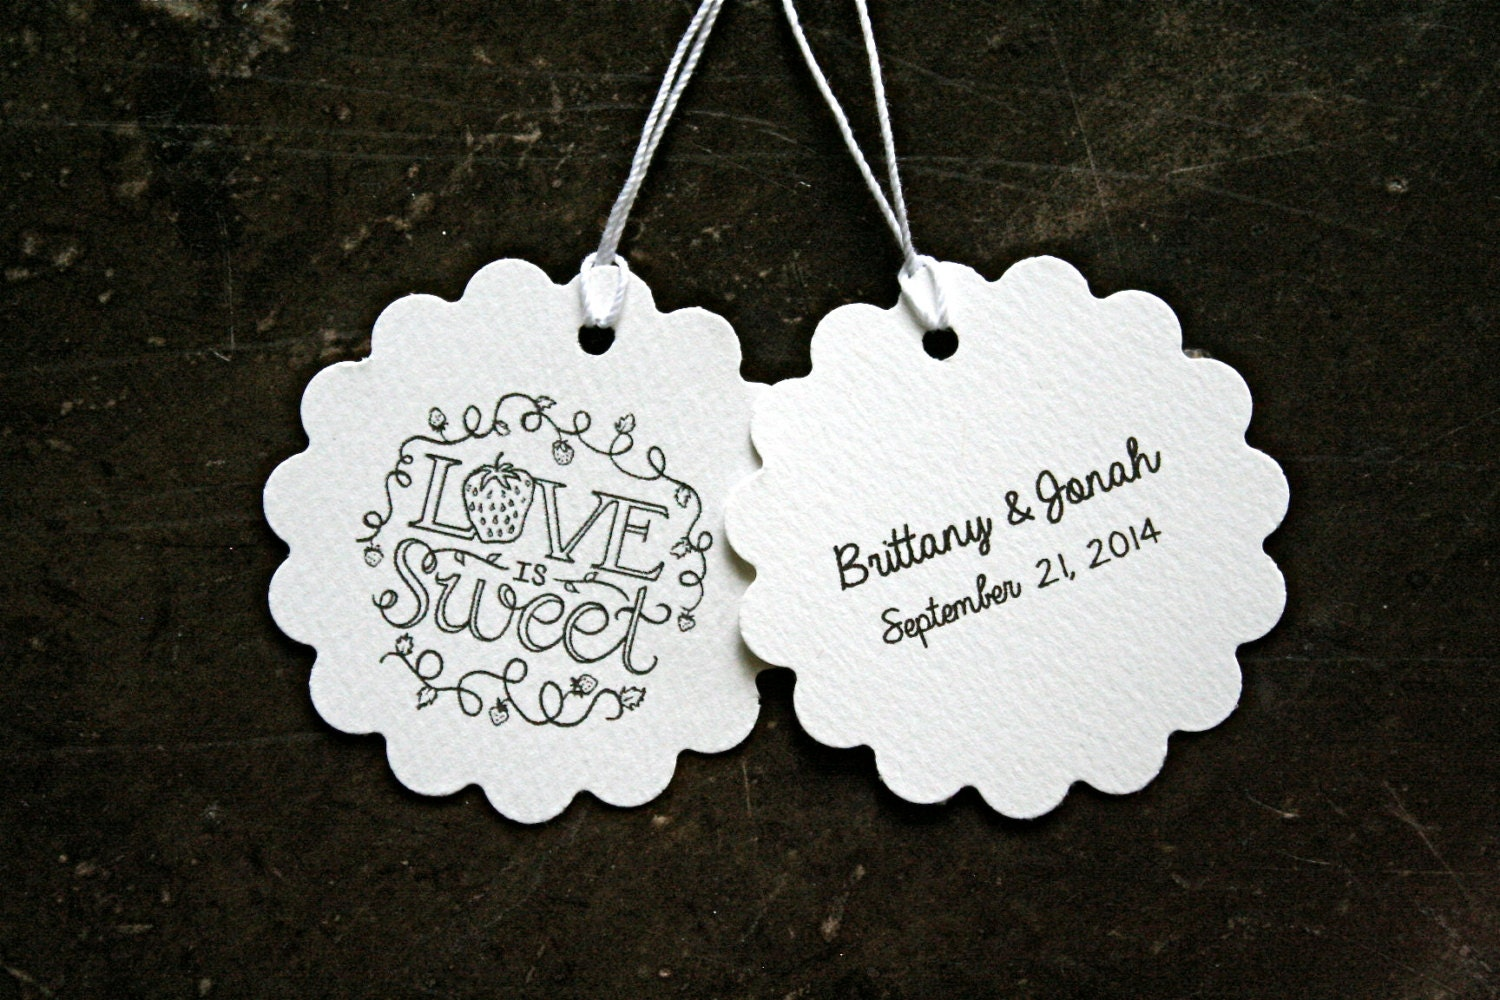 Personalised Wedding Gift Tags : Personalized wedding favor tags gift tags 50. Love is Sweet